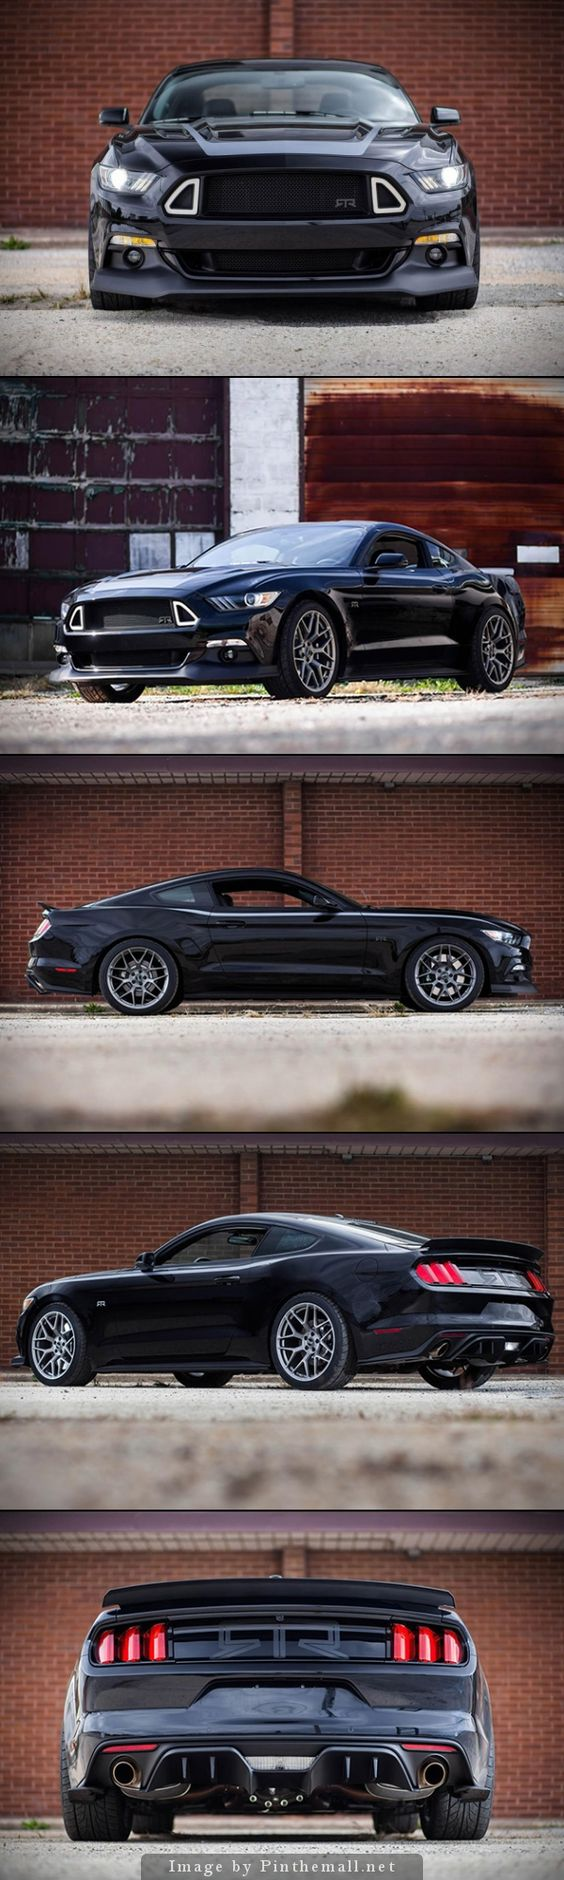 The 25 best 2016 ford mustang coupe ideas on pinterest ford mustang fastback 1967 mustang and new ford mustang